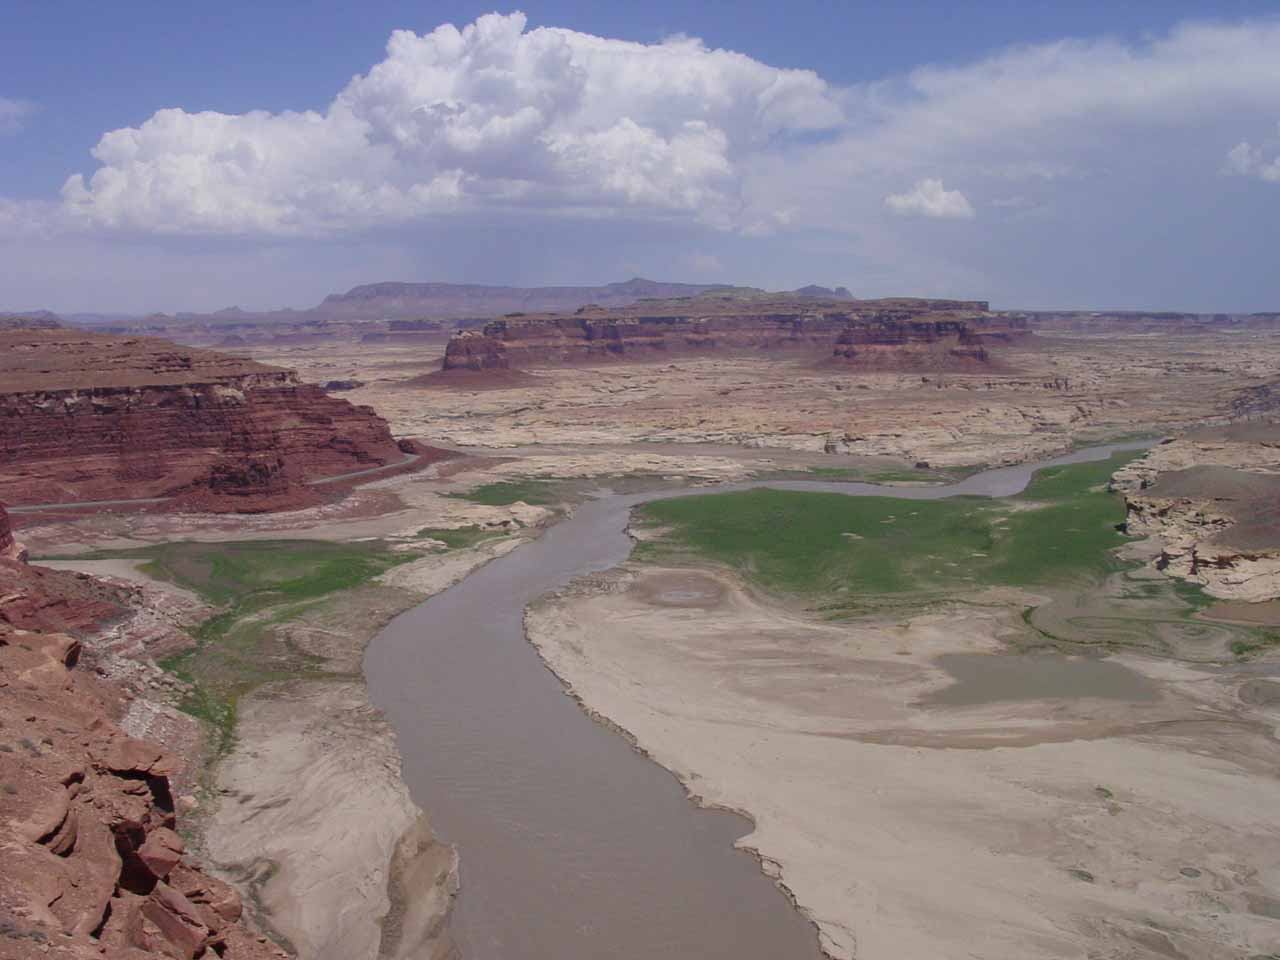 looking towards mud flats surrounding what's left of Lake Powell and the Colorado River near the Hite Marina